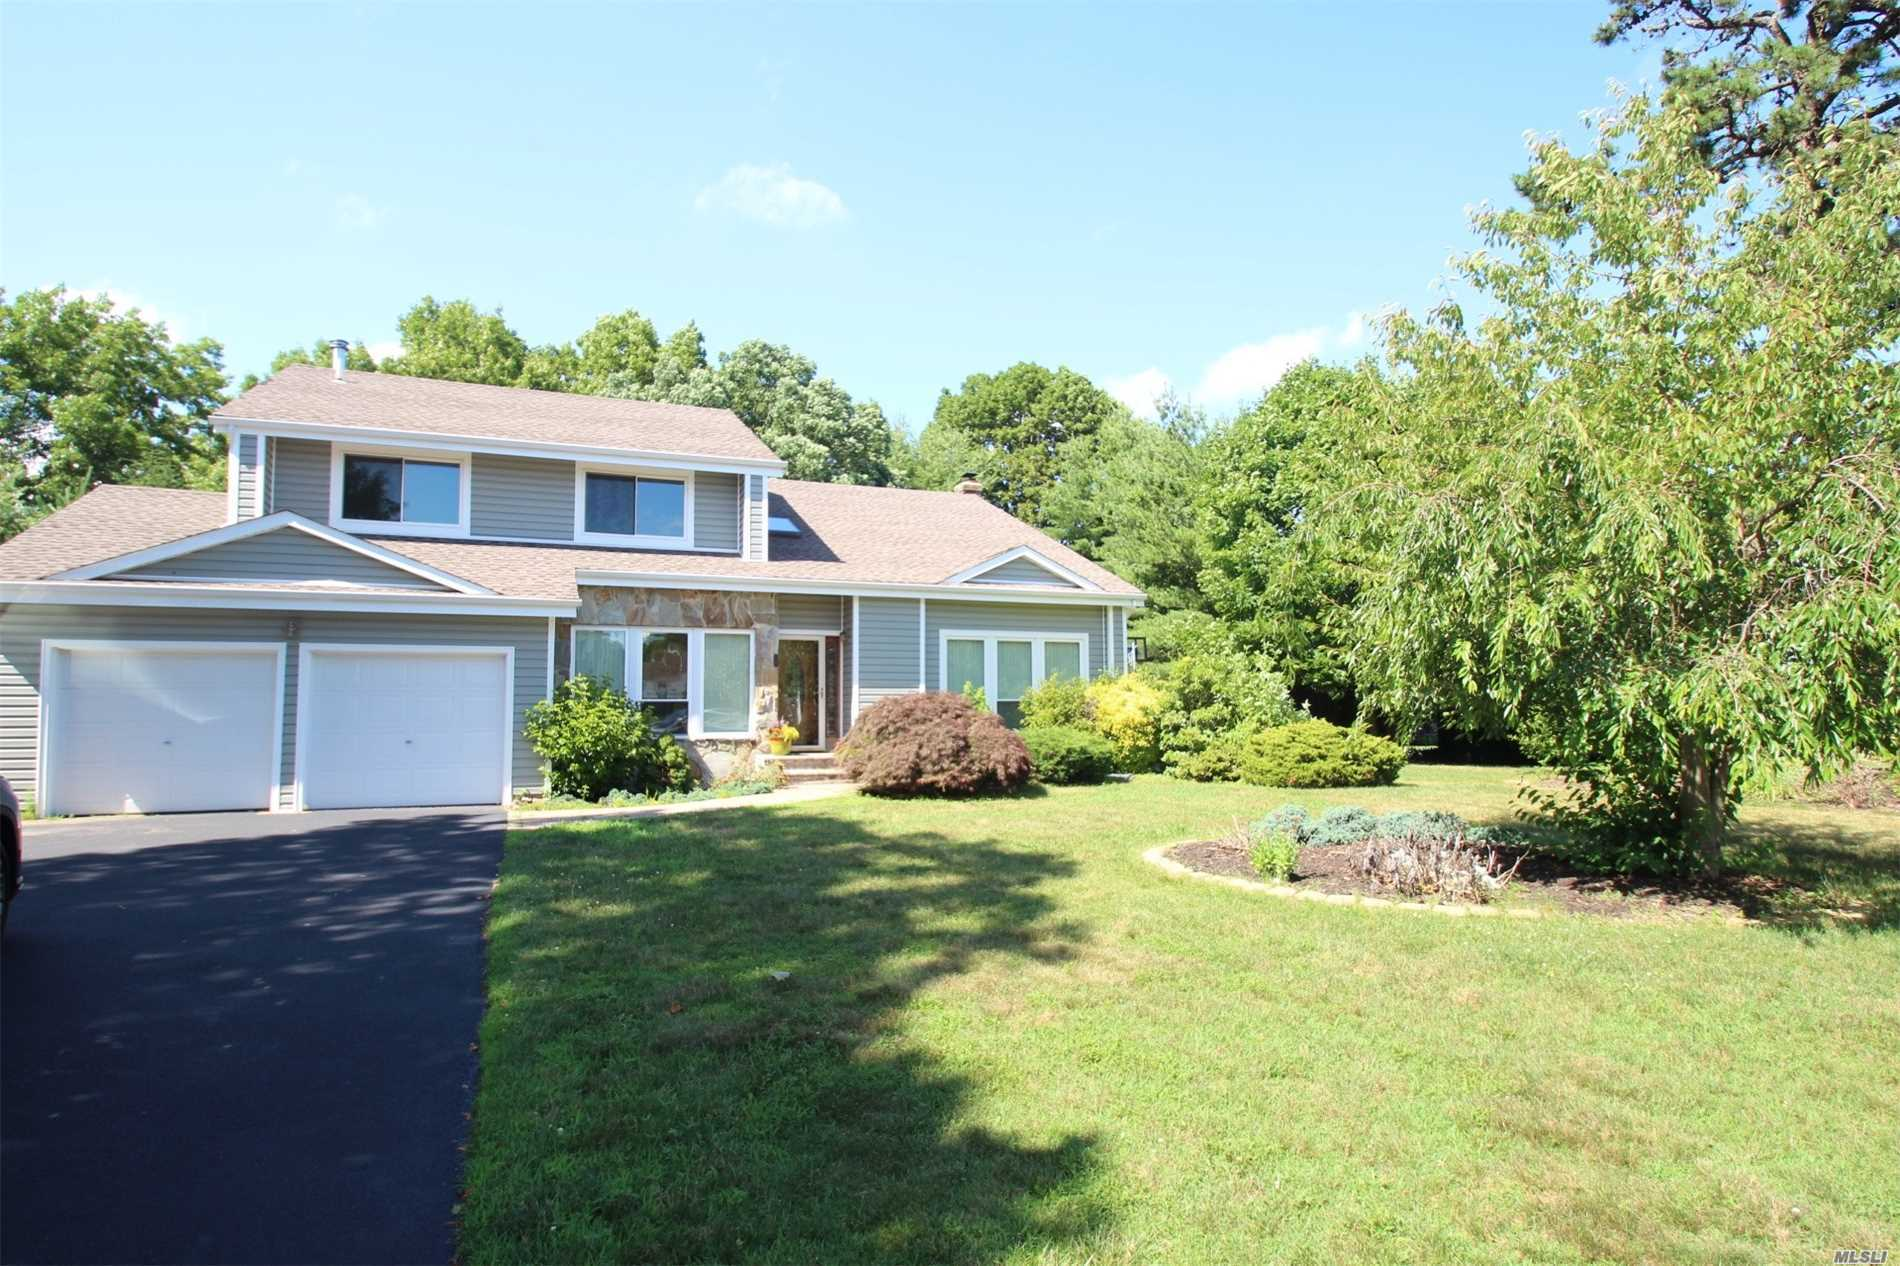 Photo of home for sale at 6 Pine Meadow Pl, Commack NY